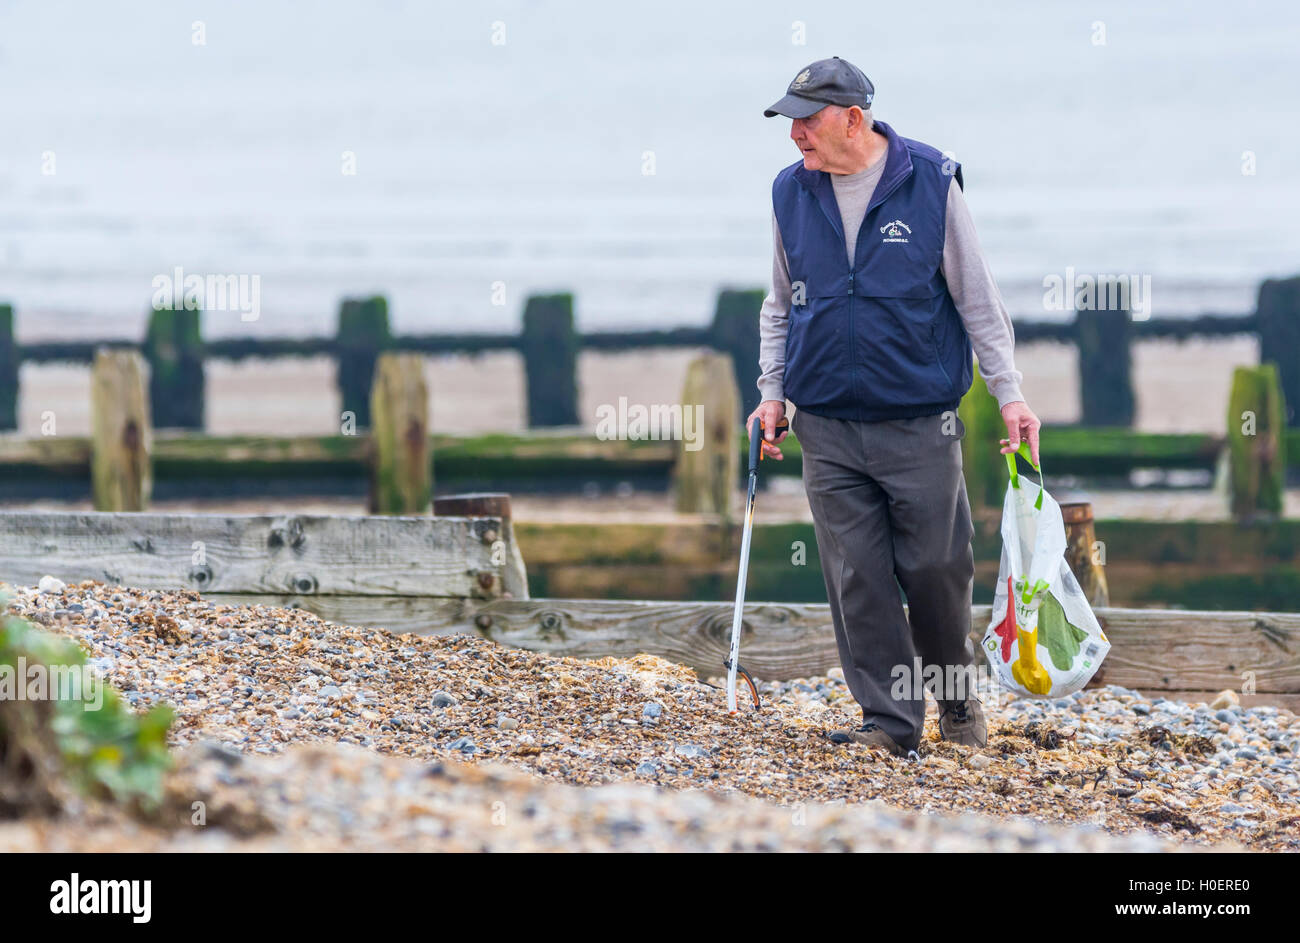 Elderly man picking up litter from a beach. - Stock Image